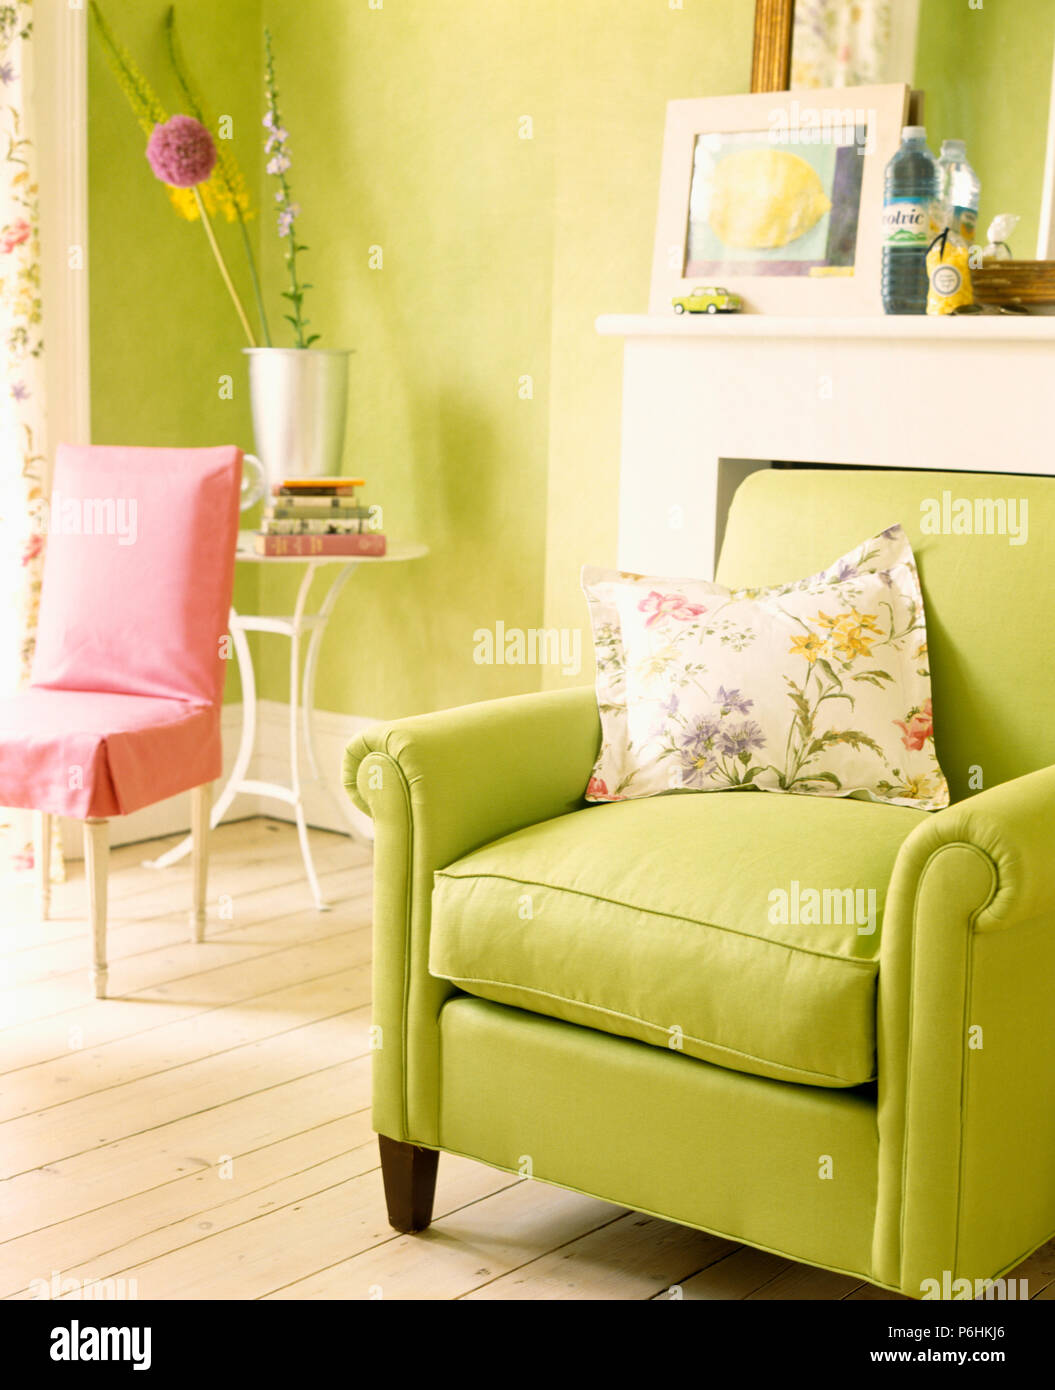 Floral cushion on lime-green armchair in pale lime-green ...